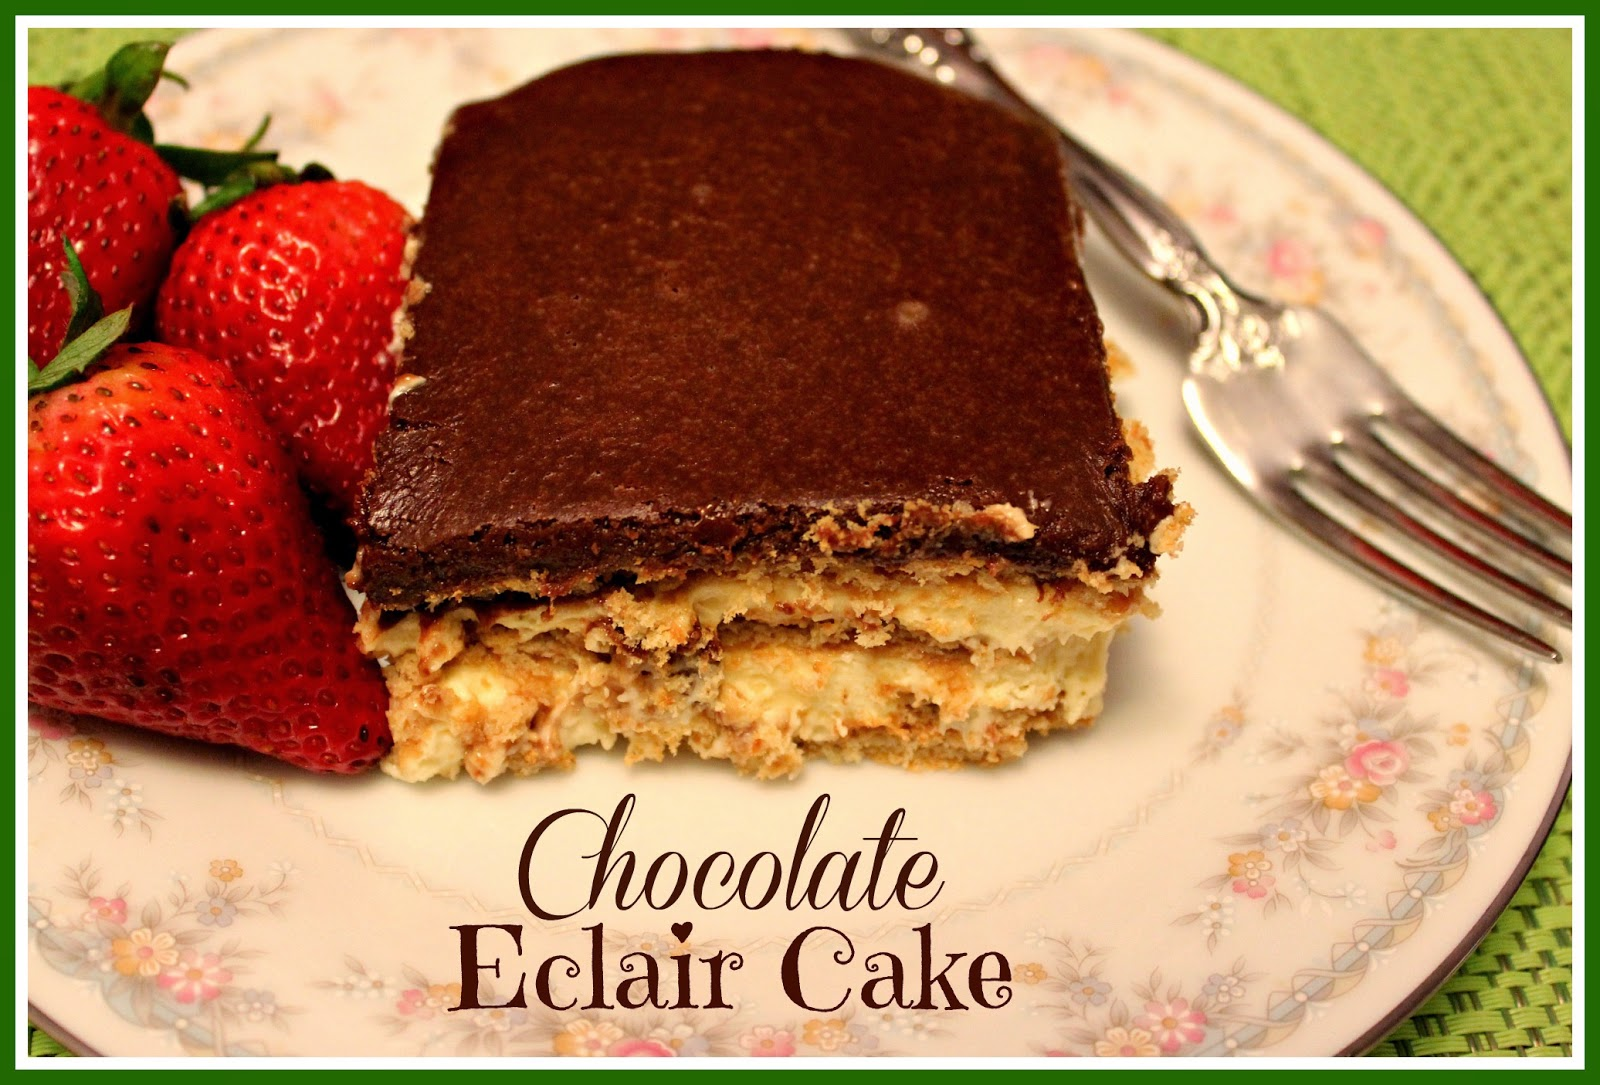 Images Of Chocolate Eclair Cake : Sweet Tea and Cornbread: No Bake Chocolate Eclair Cake!